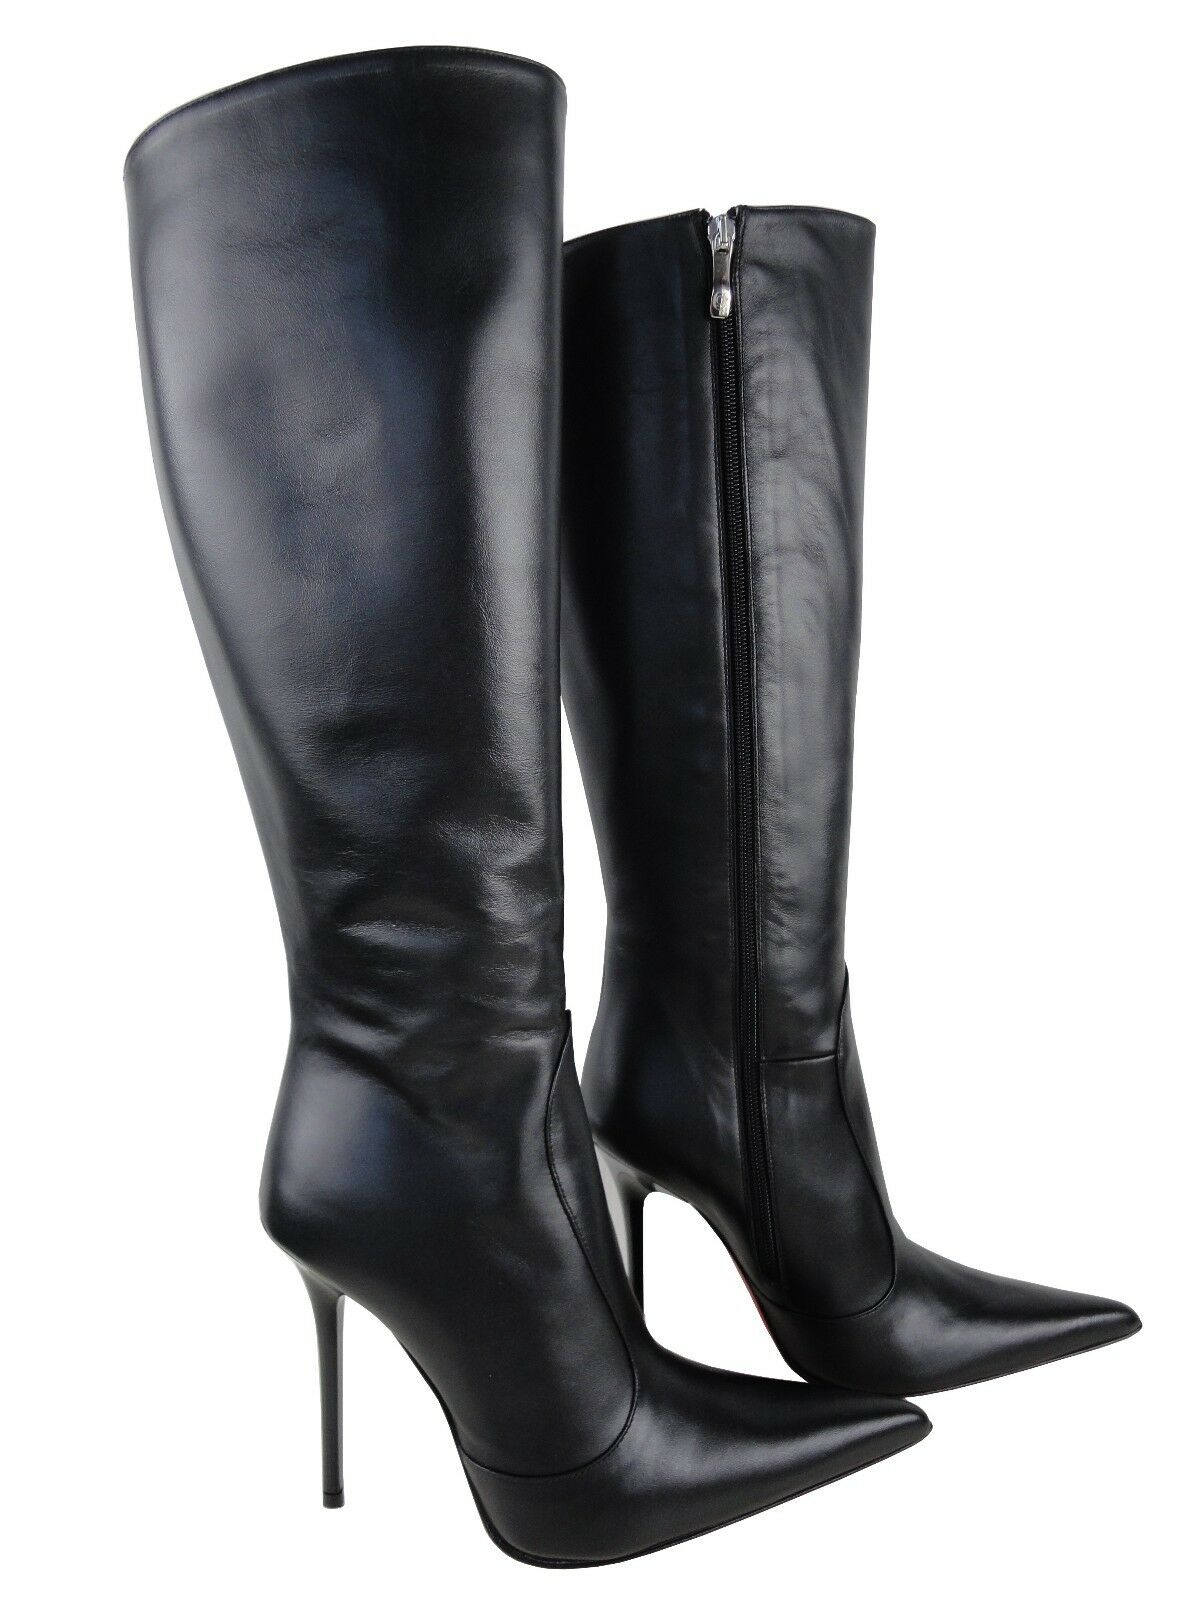 CQ COUTURE CUSTOM MADE POINTY KNEE Stiefel STIEFEL STIVALI POINTY MADE LEATHER BLACK NERO 40 c90b02